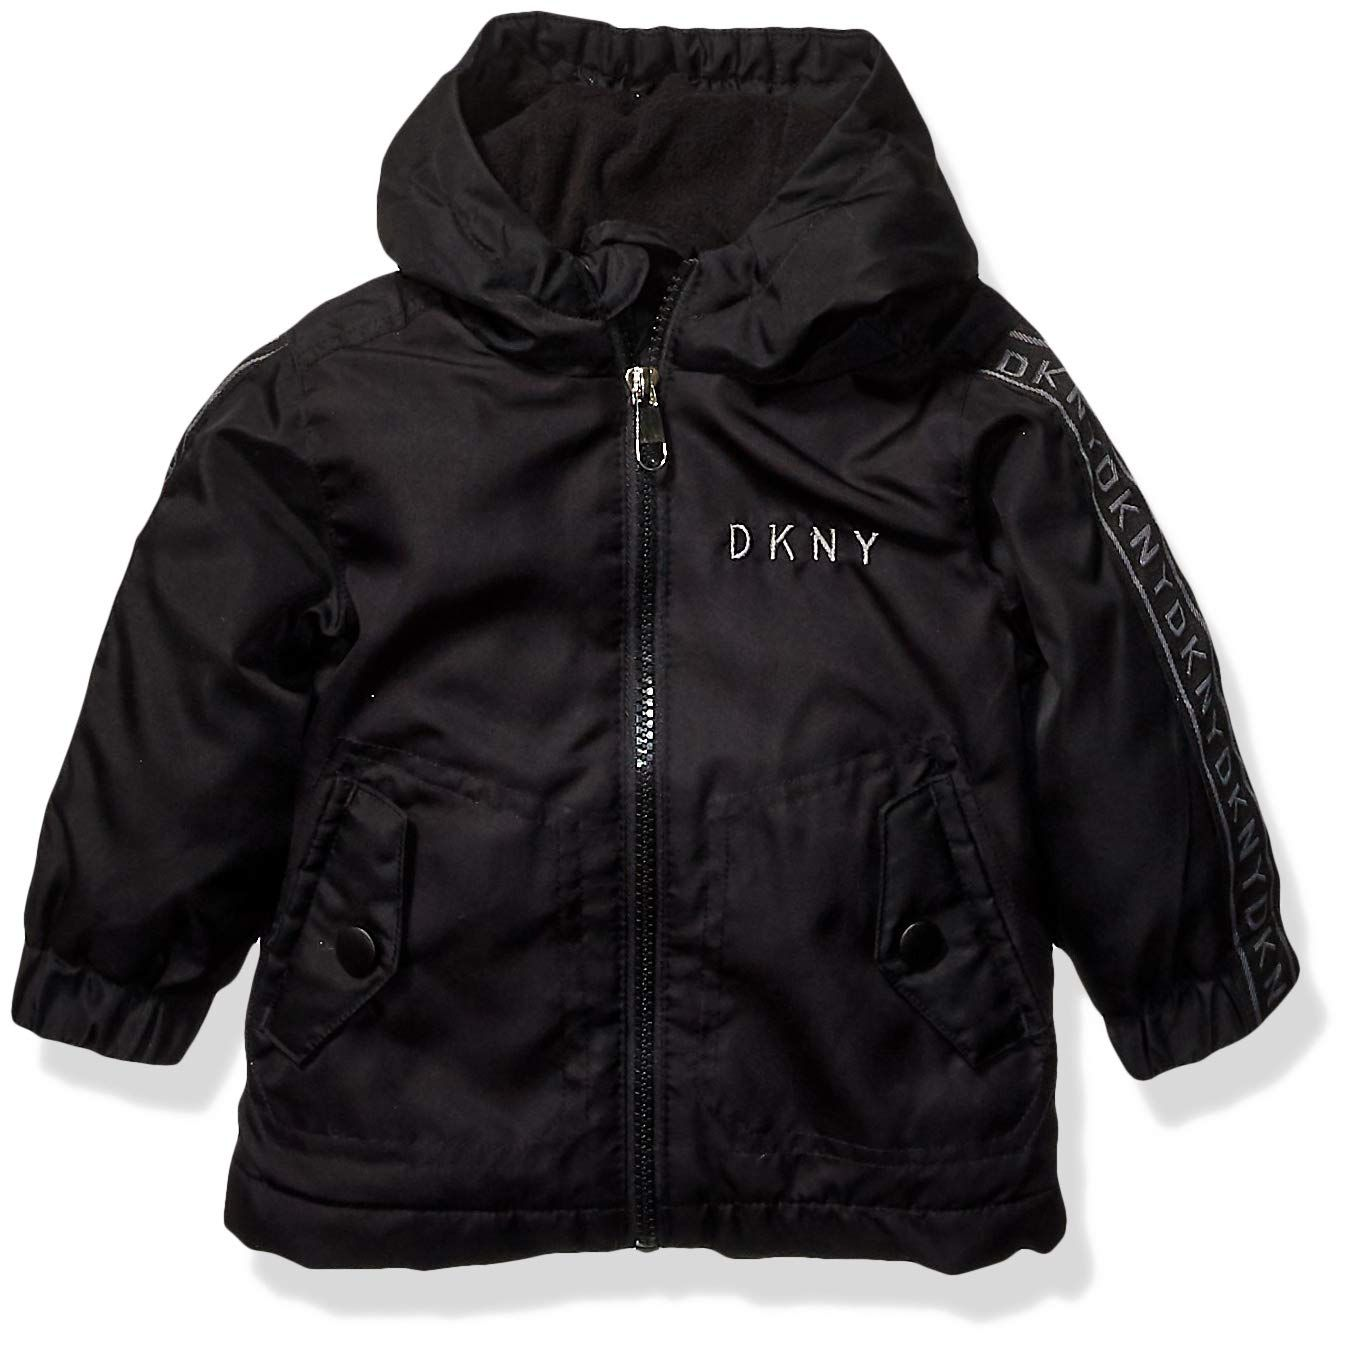 Dkny Baby Boys Fashion Outerwear Jacket Logo Sleeves Black 24m Continuously The Product At The Imag Baby Boy Jackets Baby Girl Jackets Kids Fashion Clothes [ 1347 x 1351 Pixel ]